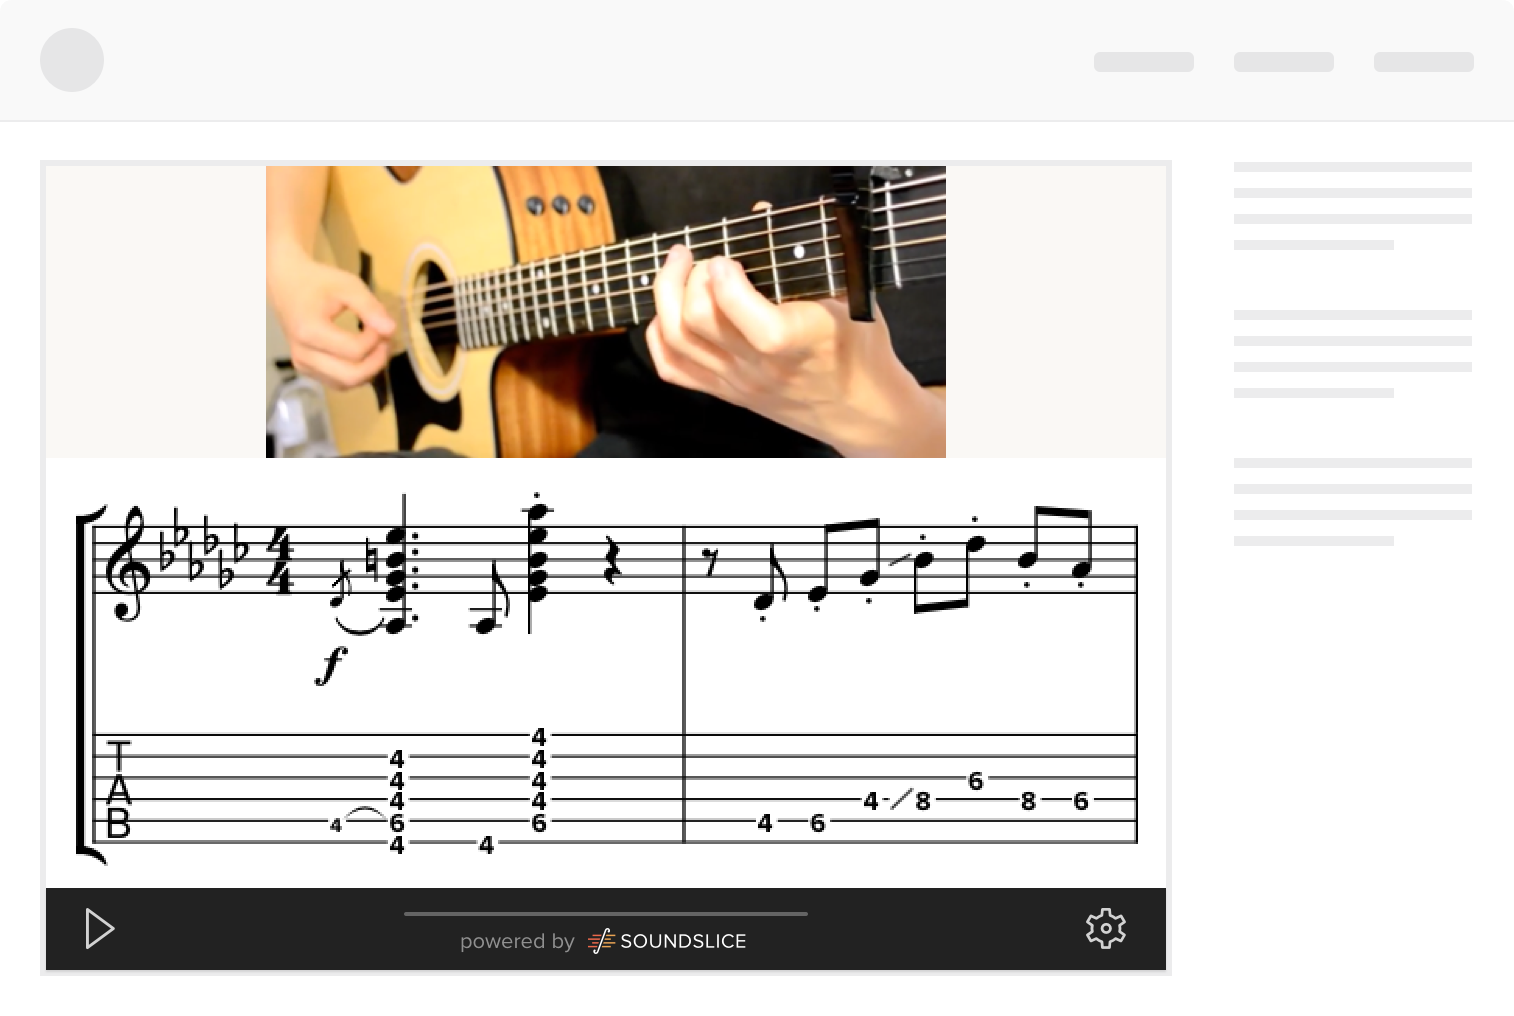 Soundslice licensing: Make your online music lessons awesome